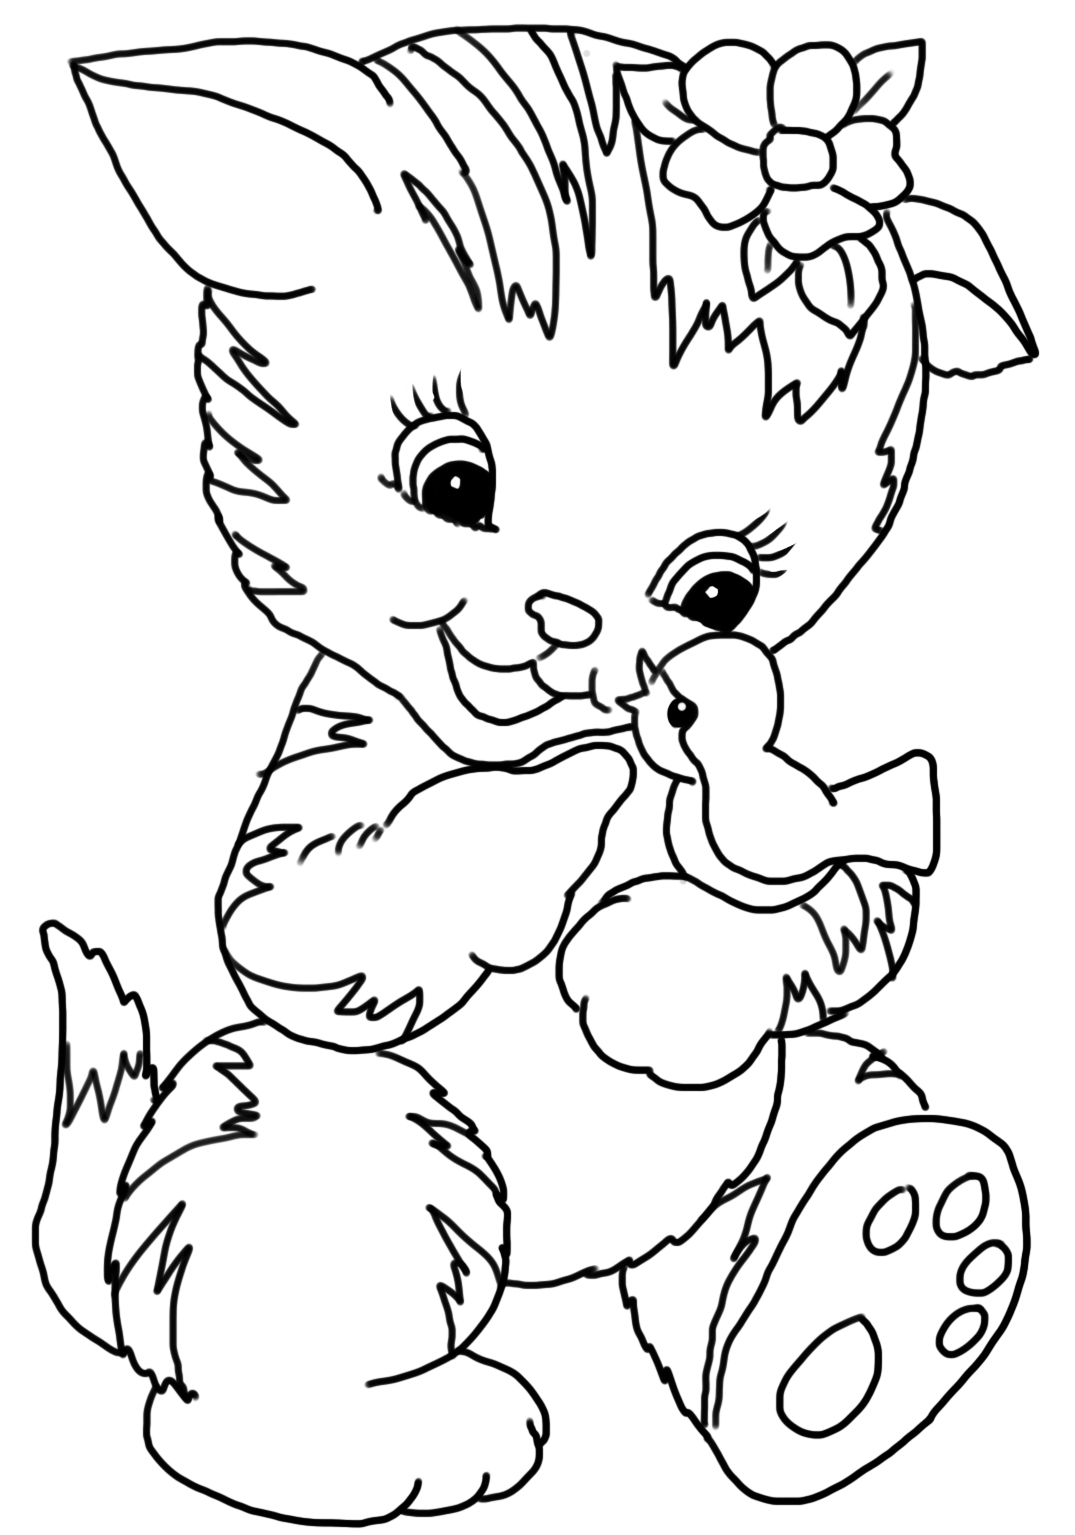 coloring pages cats free printable cat coloring pages for kids pages coloring cats